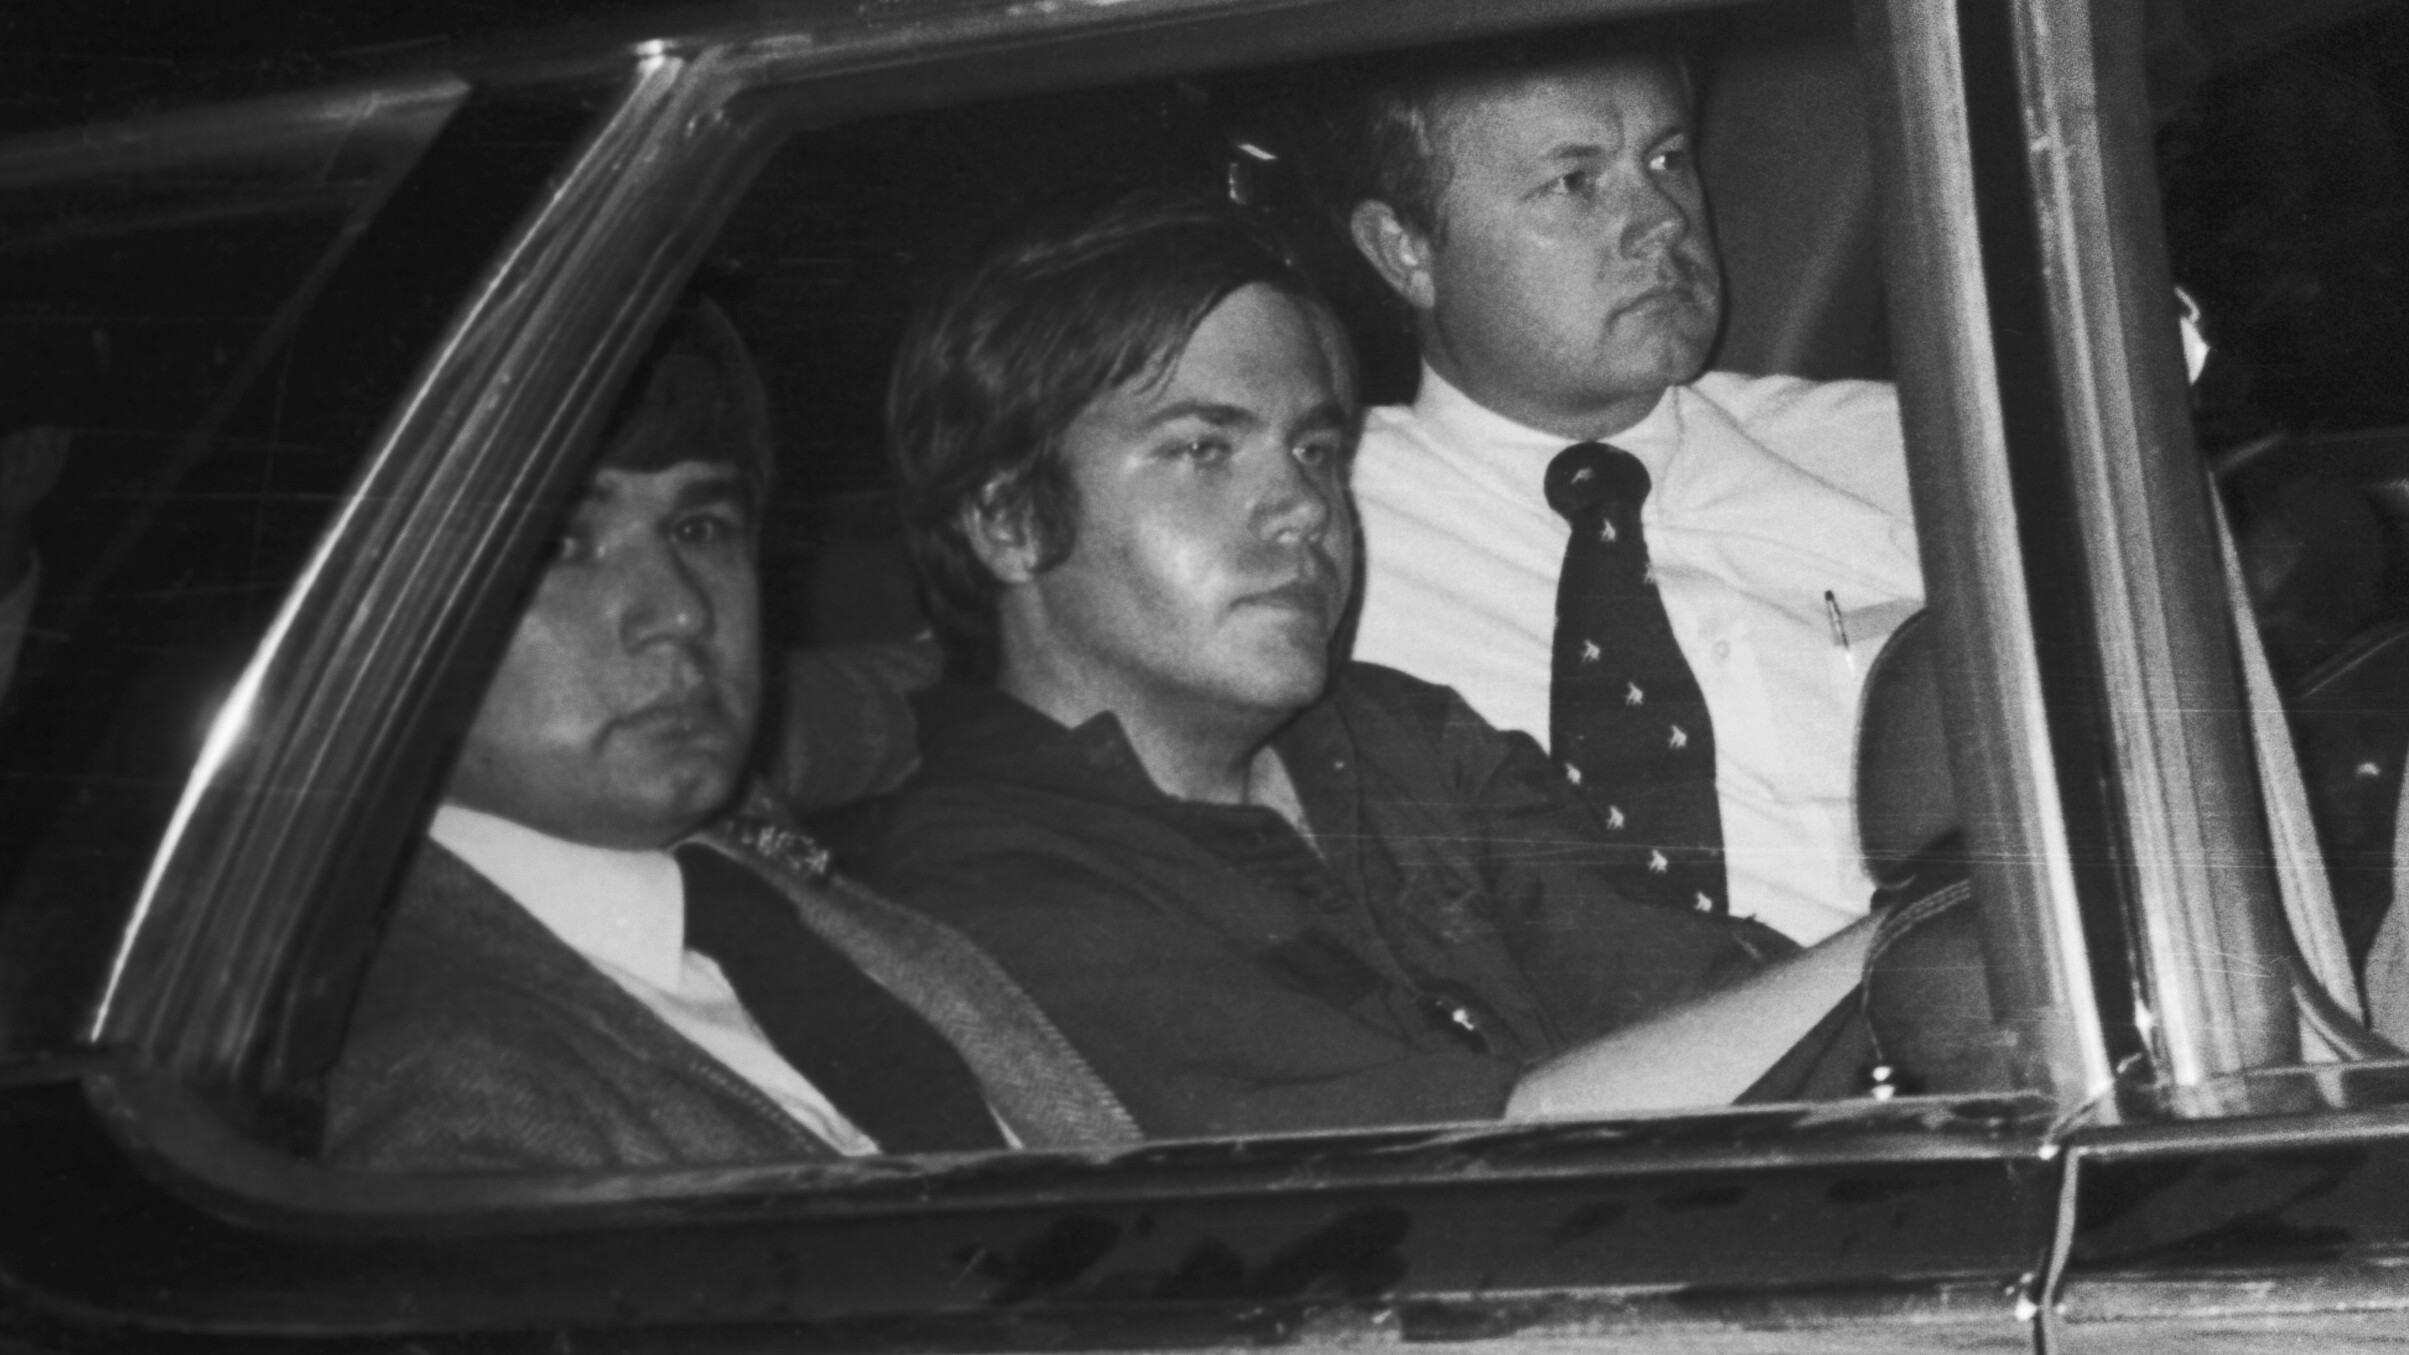 Justice Department agrees to drop release restrictions for Reagan shooter John Hinckley Jr.